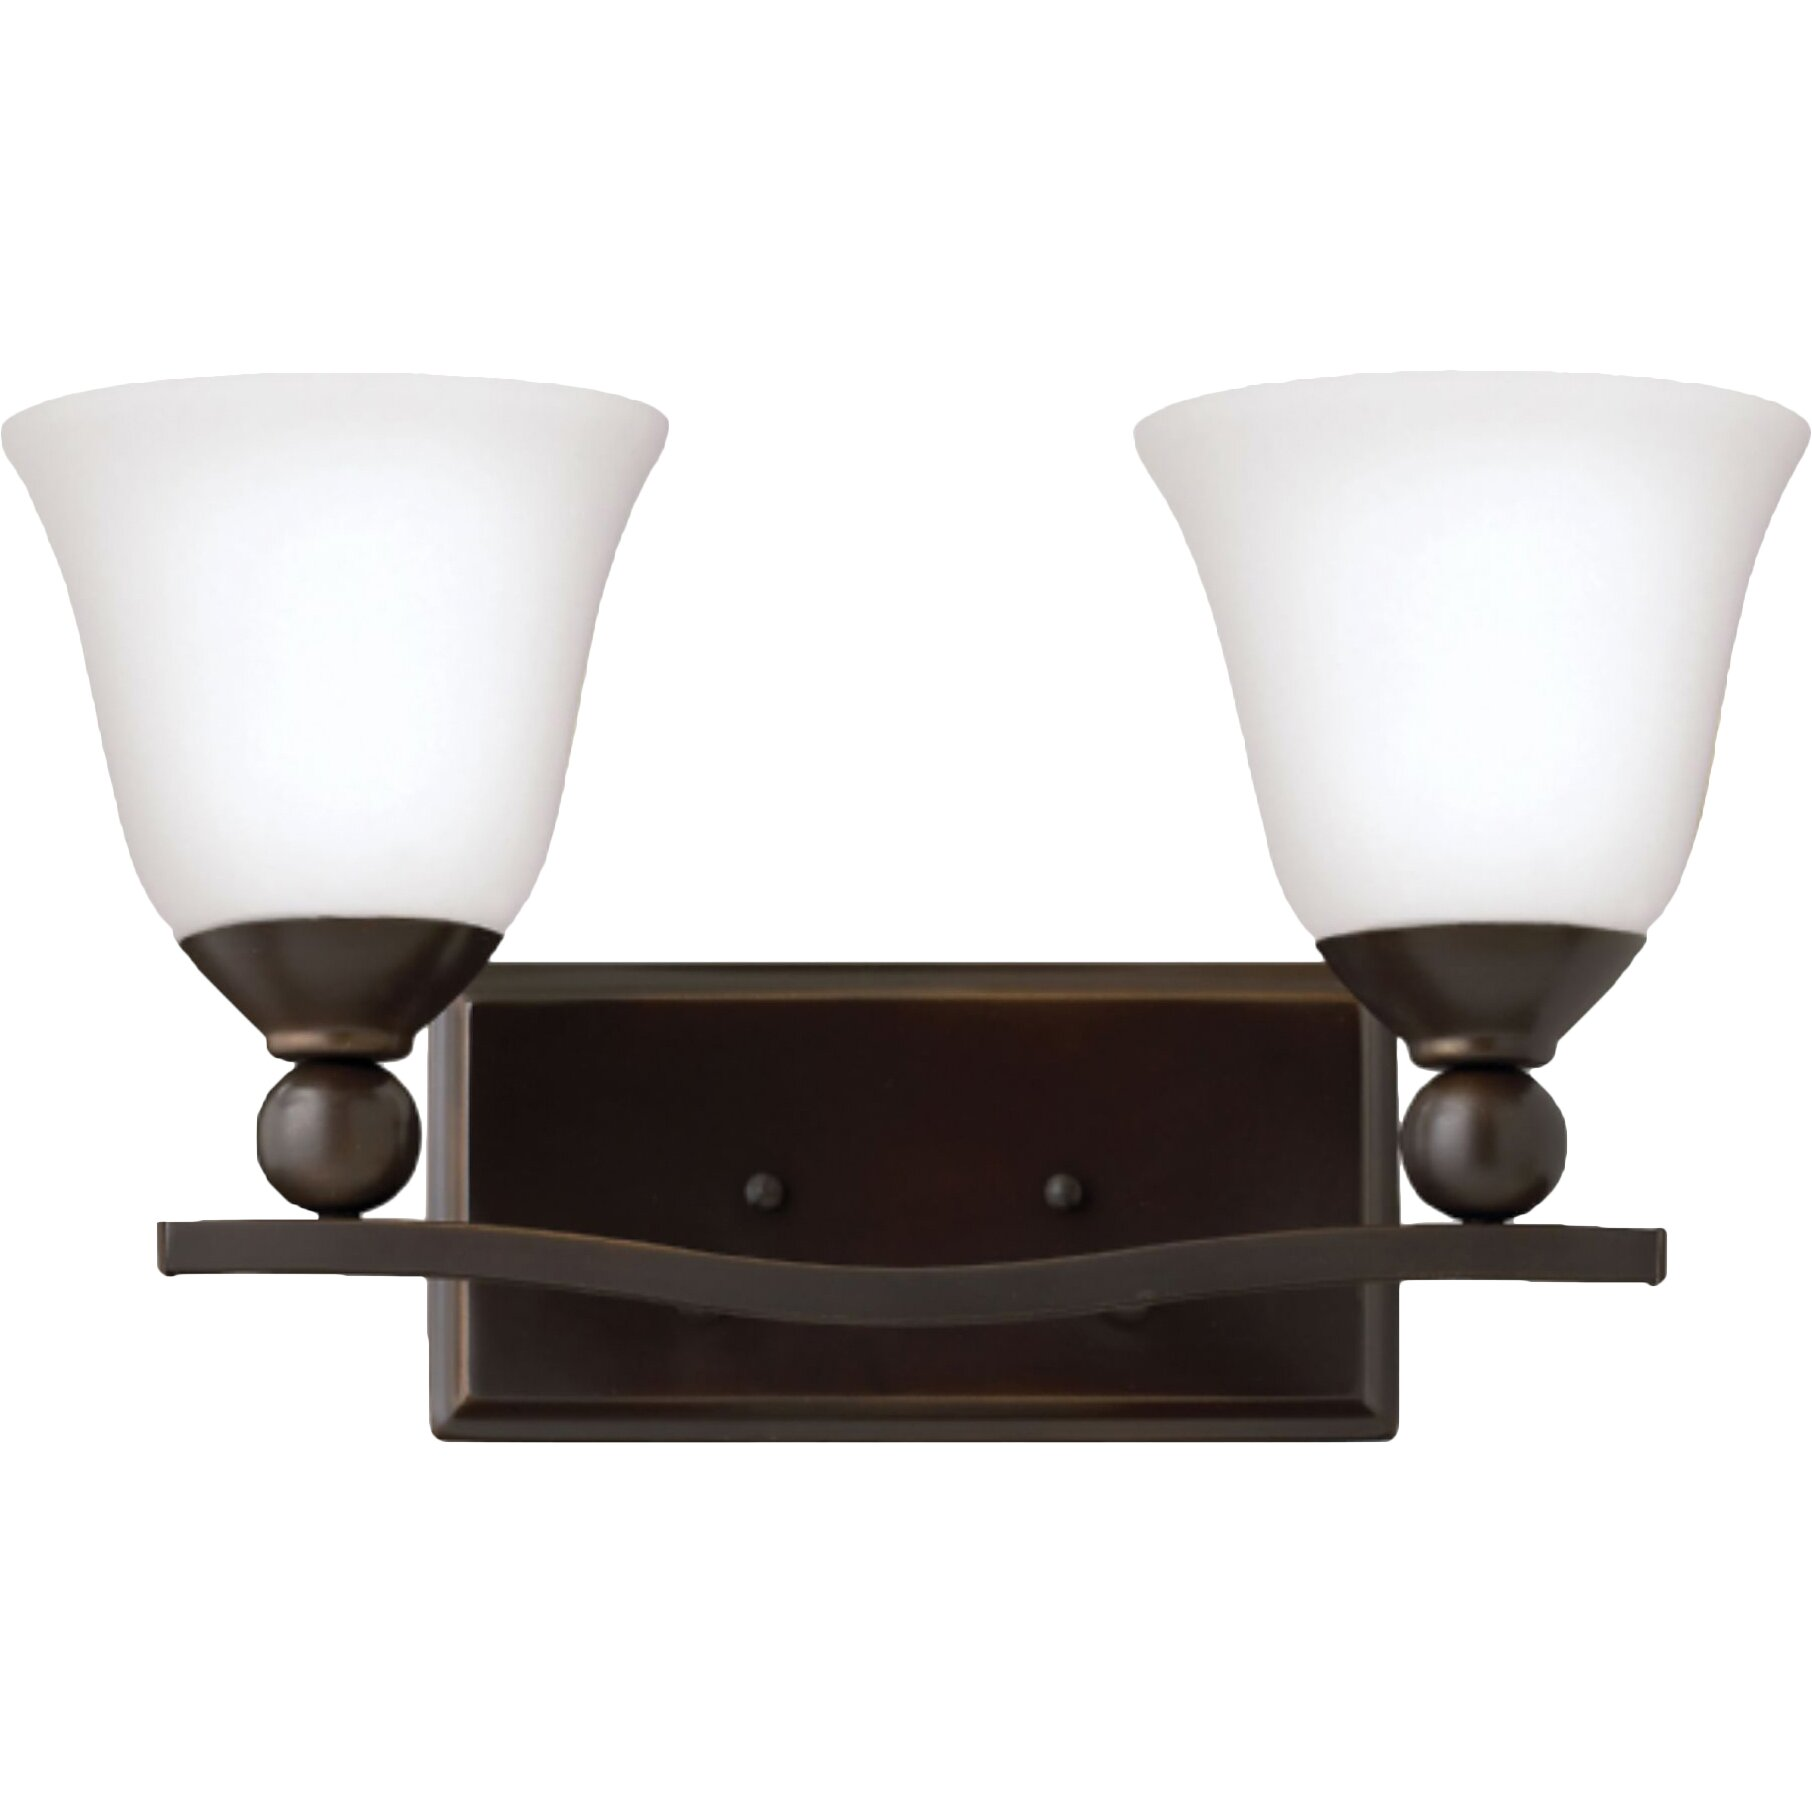 Hinkley Bathroom Wall Sconces : Hinkley Lighting Bolla 2 Light Vanity Wall Sconce & Reviews Wayfair